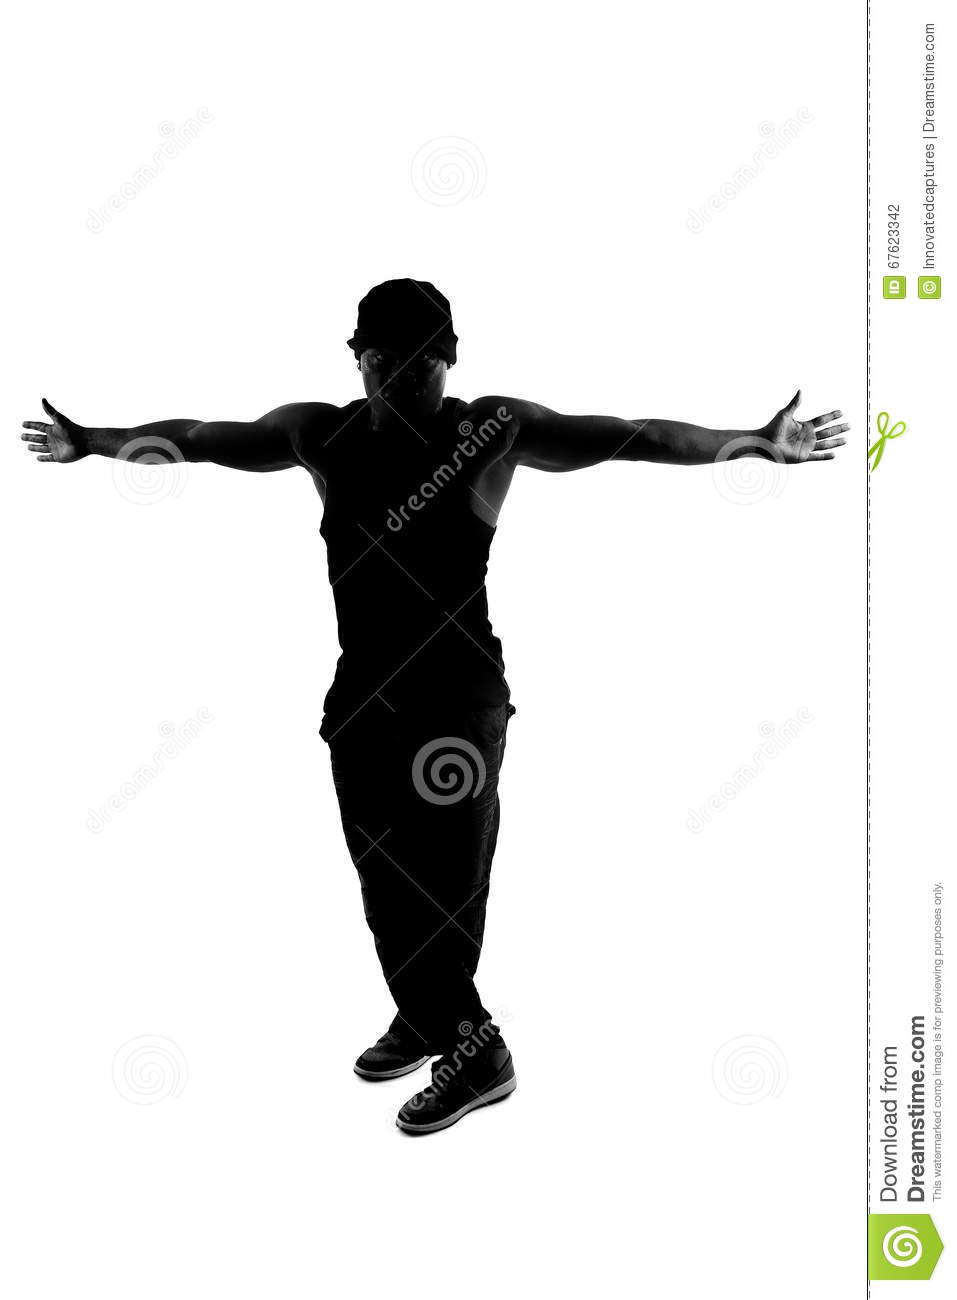 Black And White Silhouette Of A Male Dancer Posing With Dance Moves